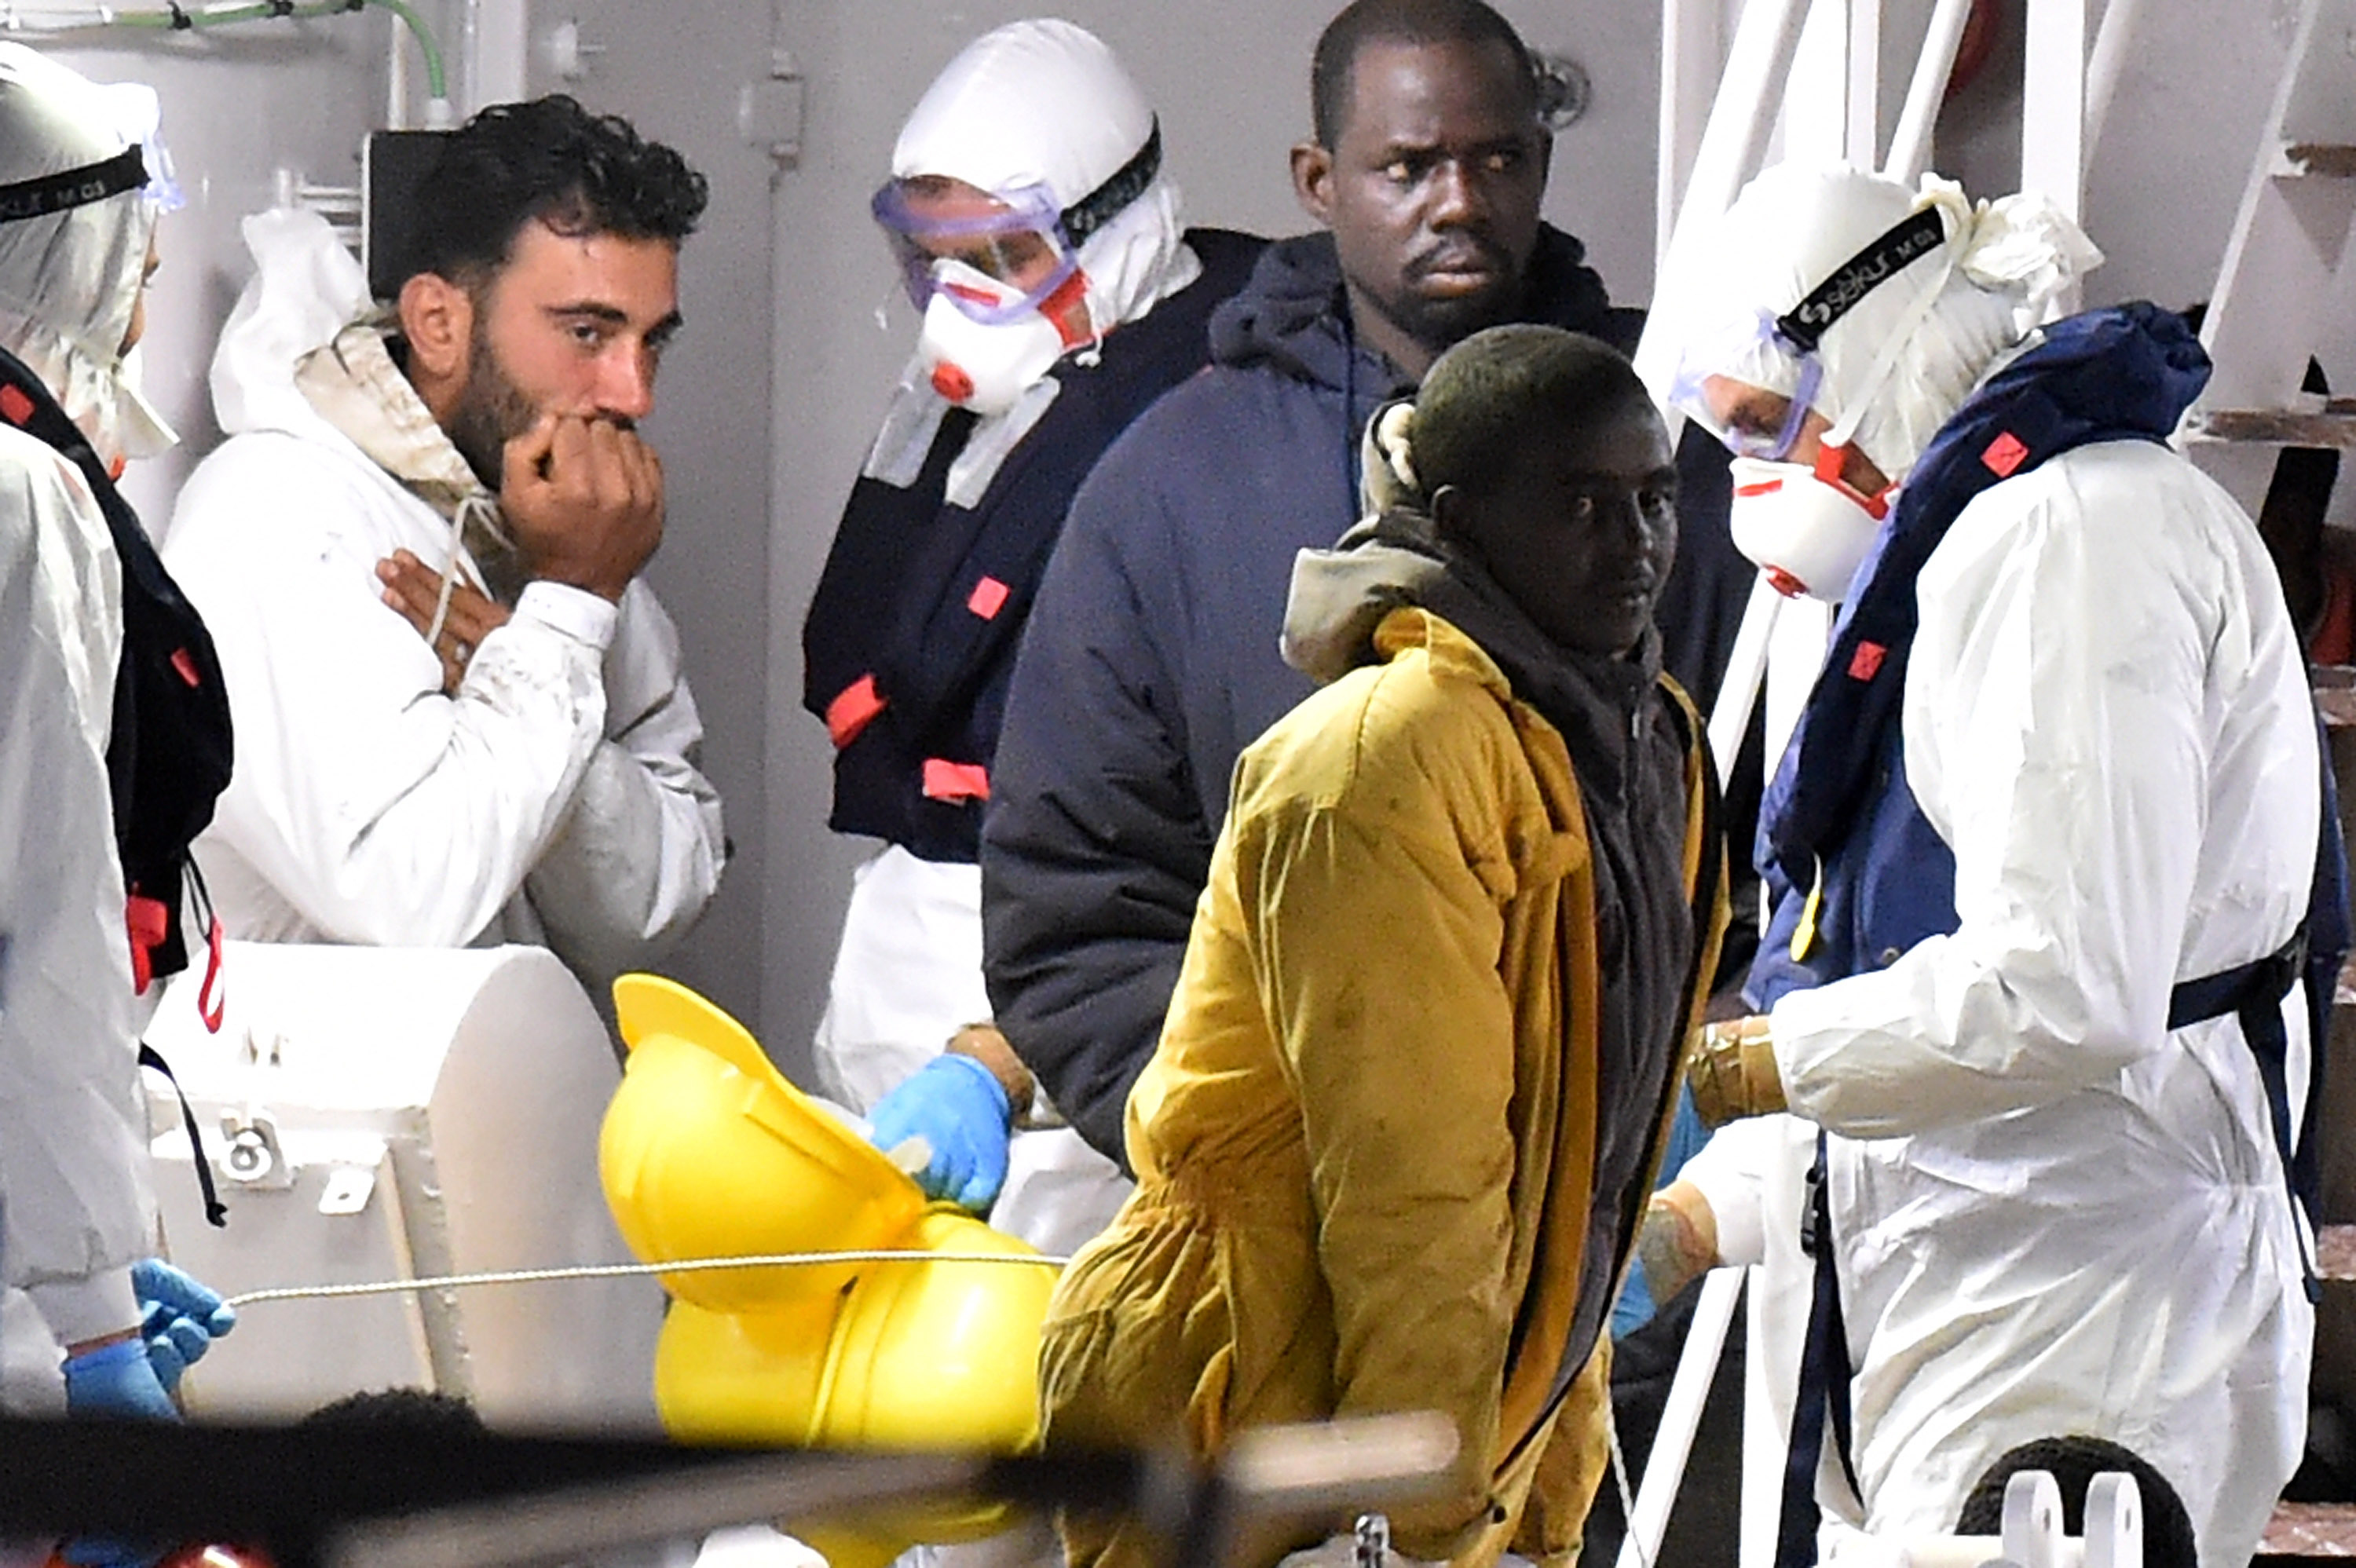 Tunisian skipper Mohammed Ali Malek stands on the deck of the Italian Coast Guard ship Gregretti which is carrying 27 survivors of the migrant shipwreck in the mediterranean, at Catania port on April 20, 2015 in Catania, Italy.  (Getty)